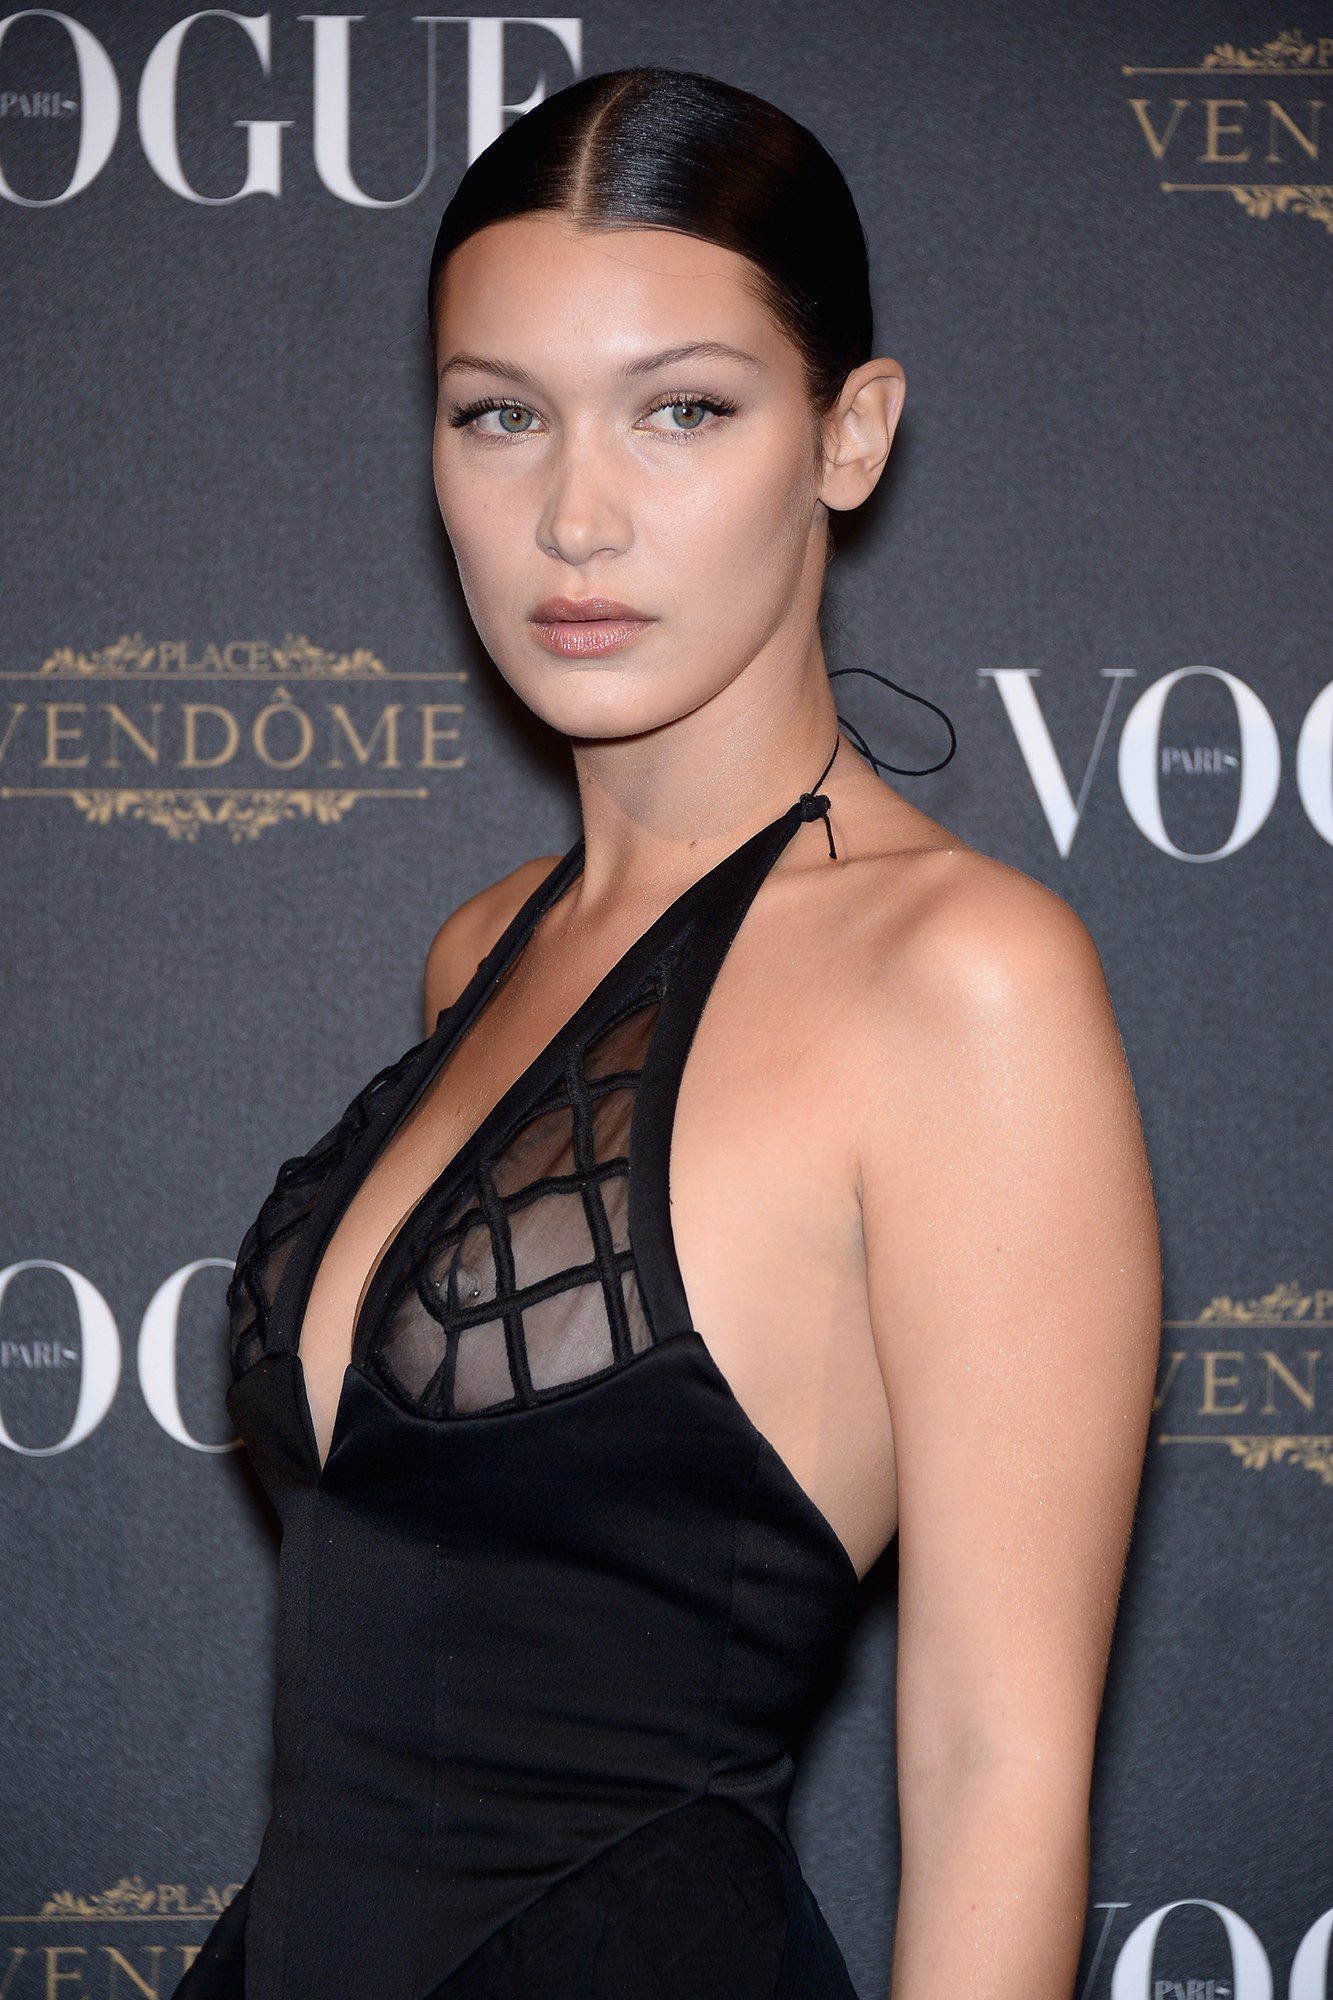 Bella Hadid & Kendall Jenner Free the Nipple; Hot or NOT